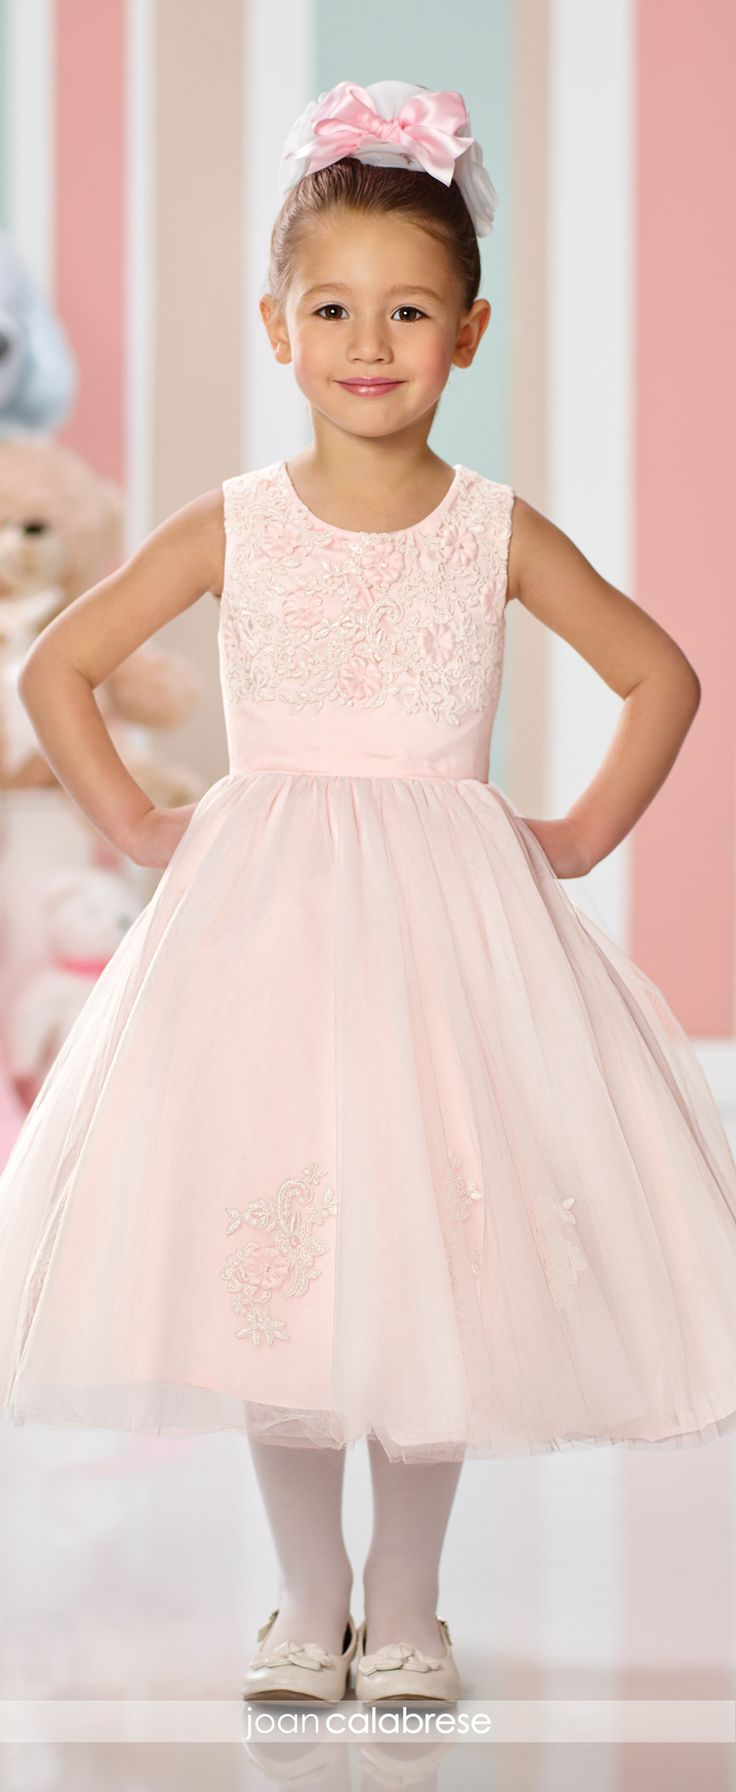 Joan Calabrese for Mon Cheri - Fall 2016 - Style No. 216323 - light pink flower girl dress in satin and tulle with lace appliqués and pressed flowers